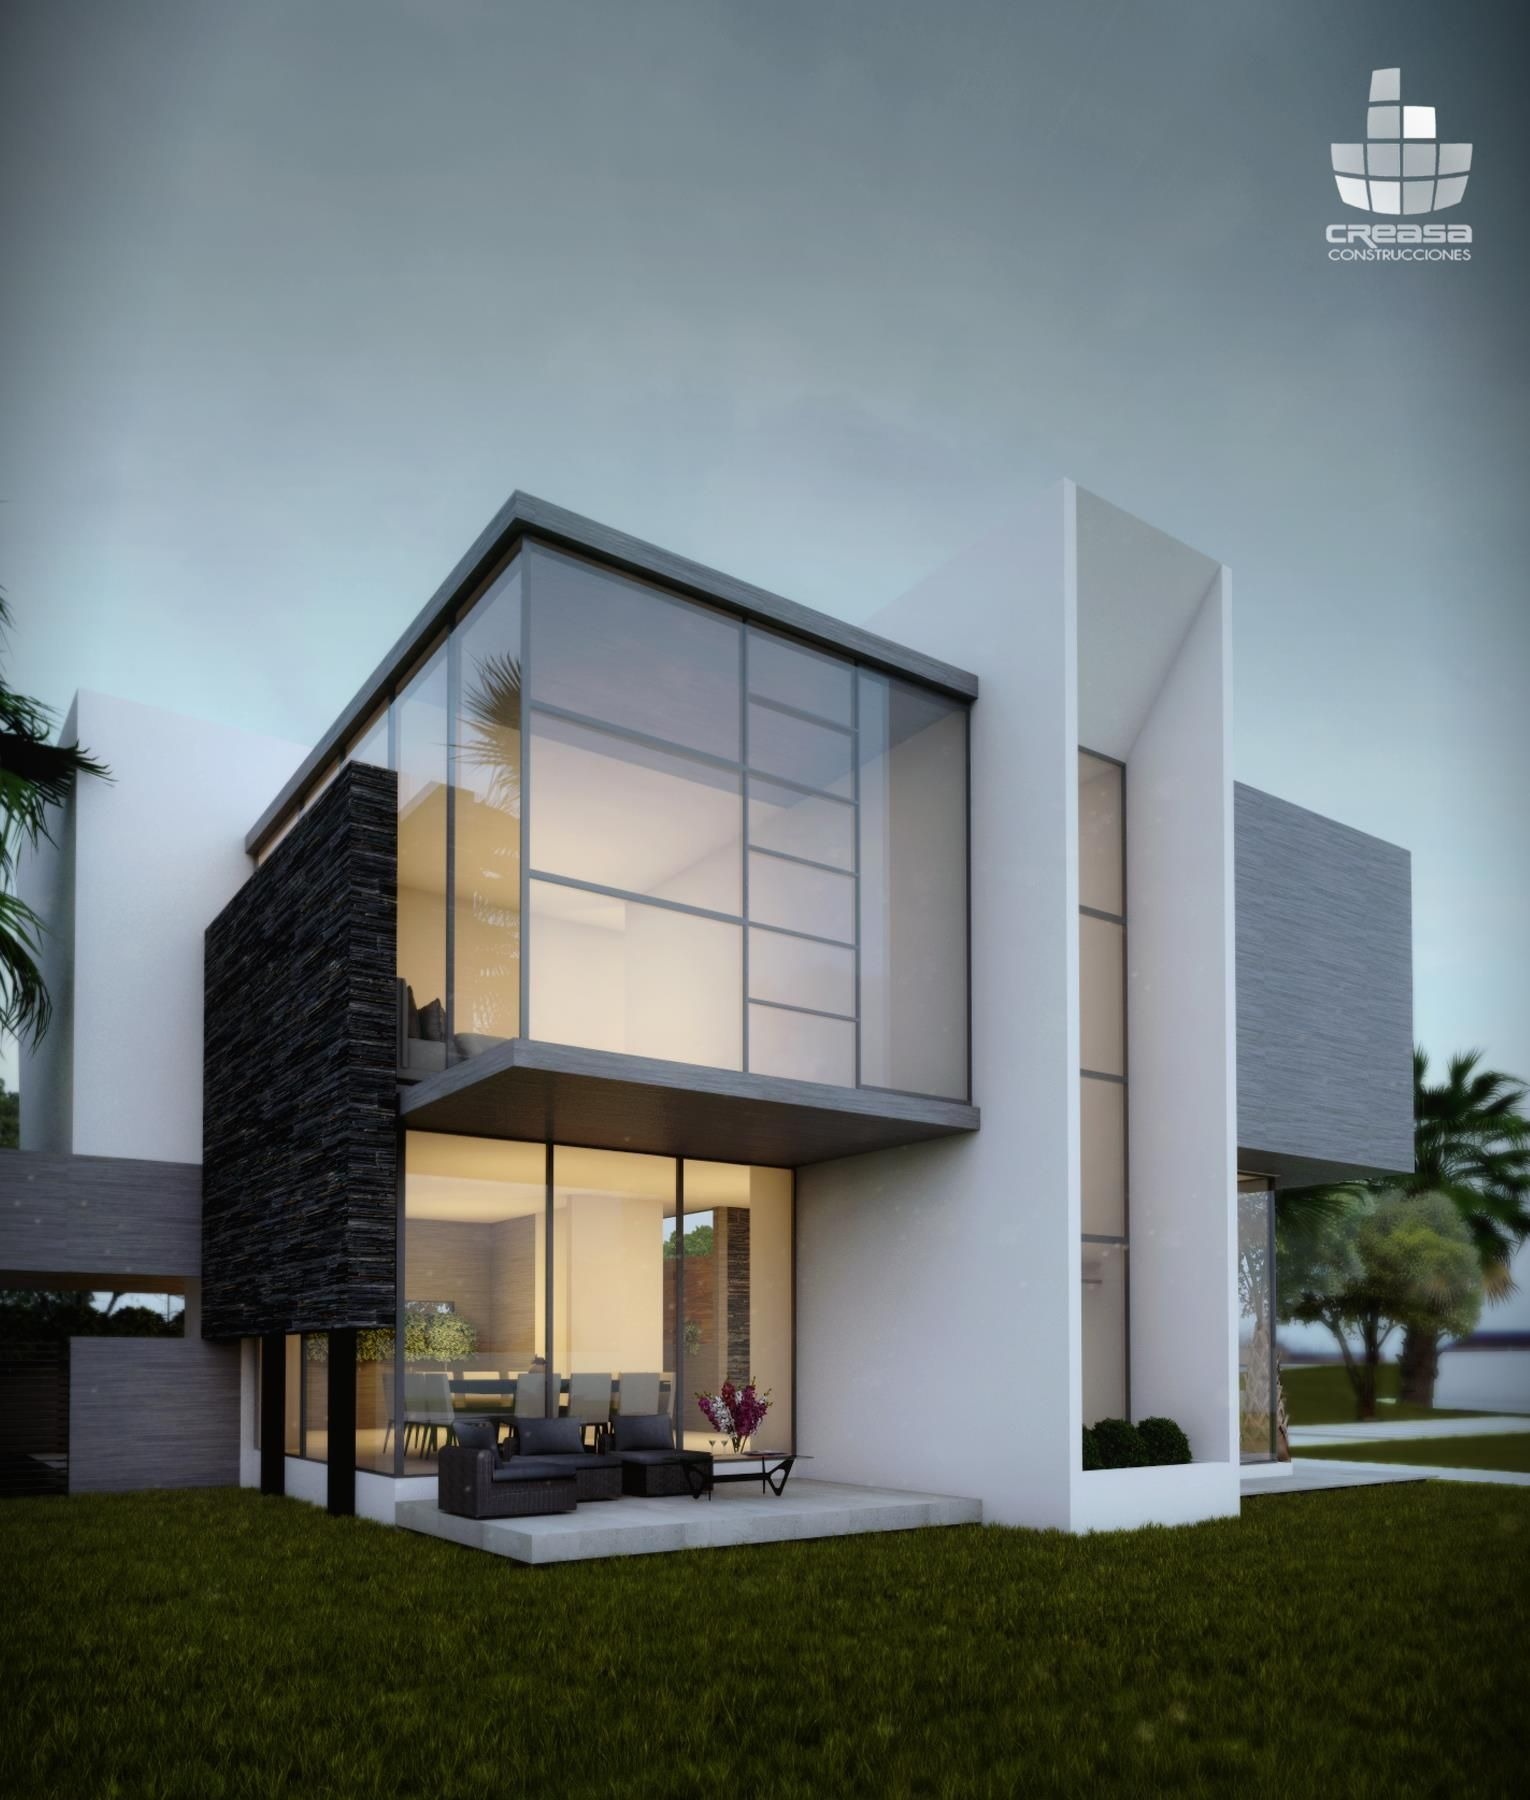 Creasa modern architecture pinterest villas house for Architectural homes